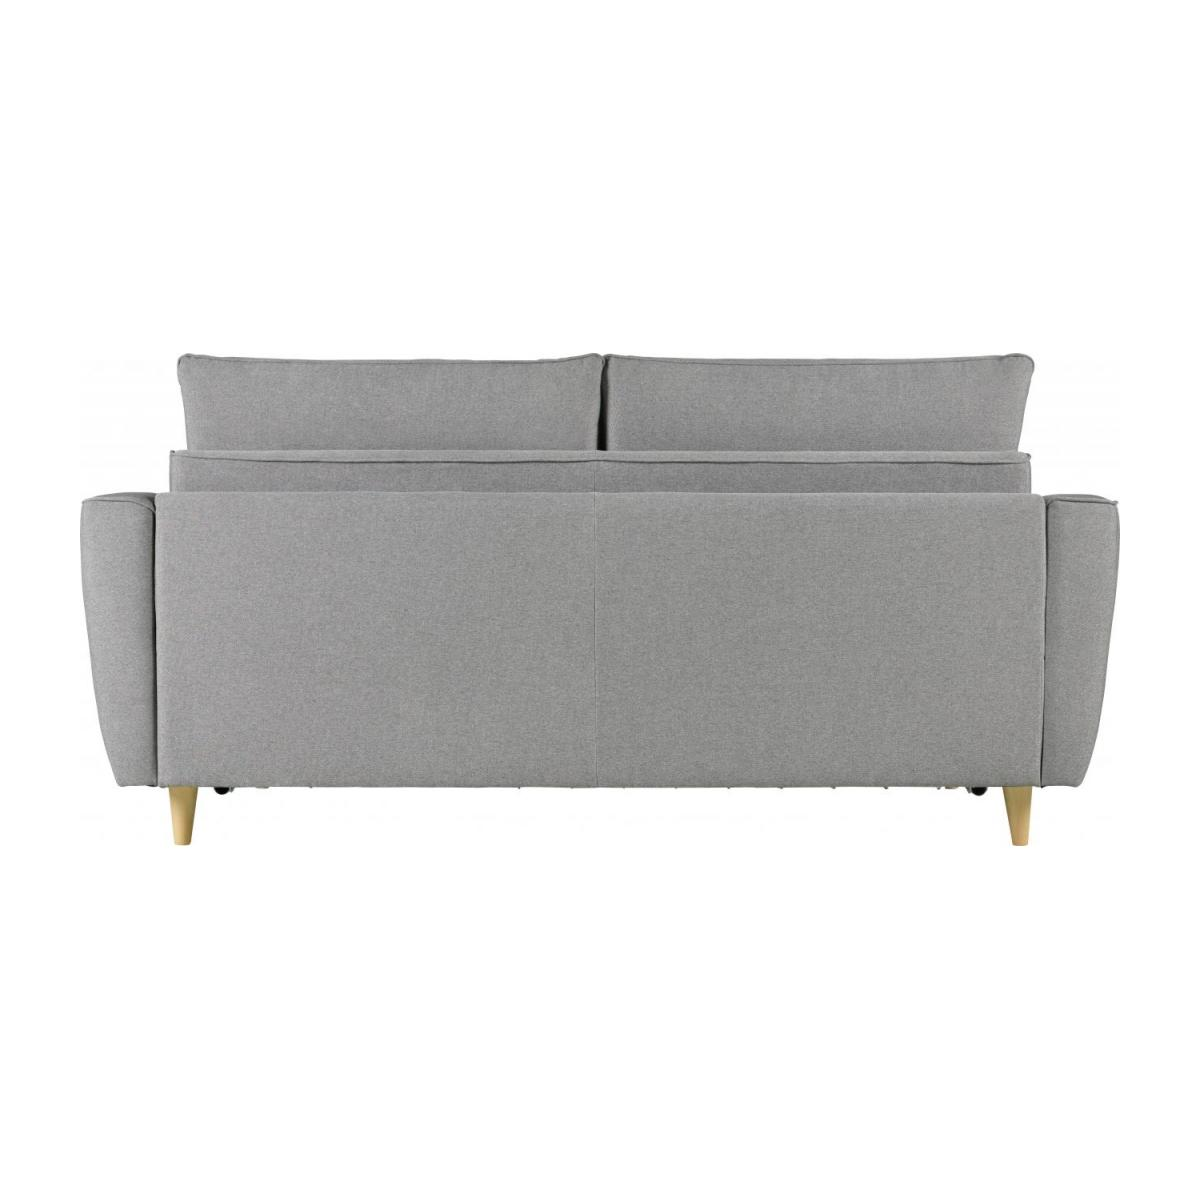 3 seater Sofa Bed with slatted base n°5